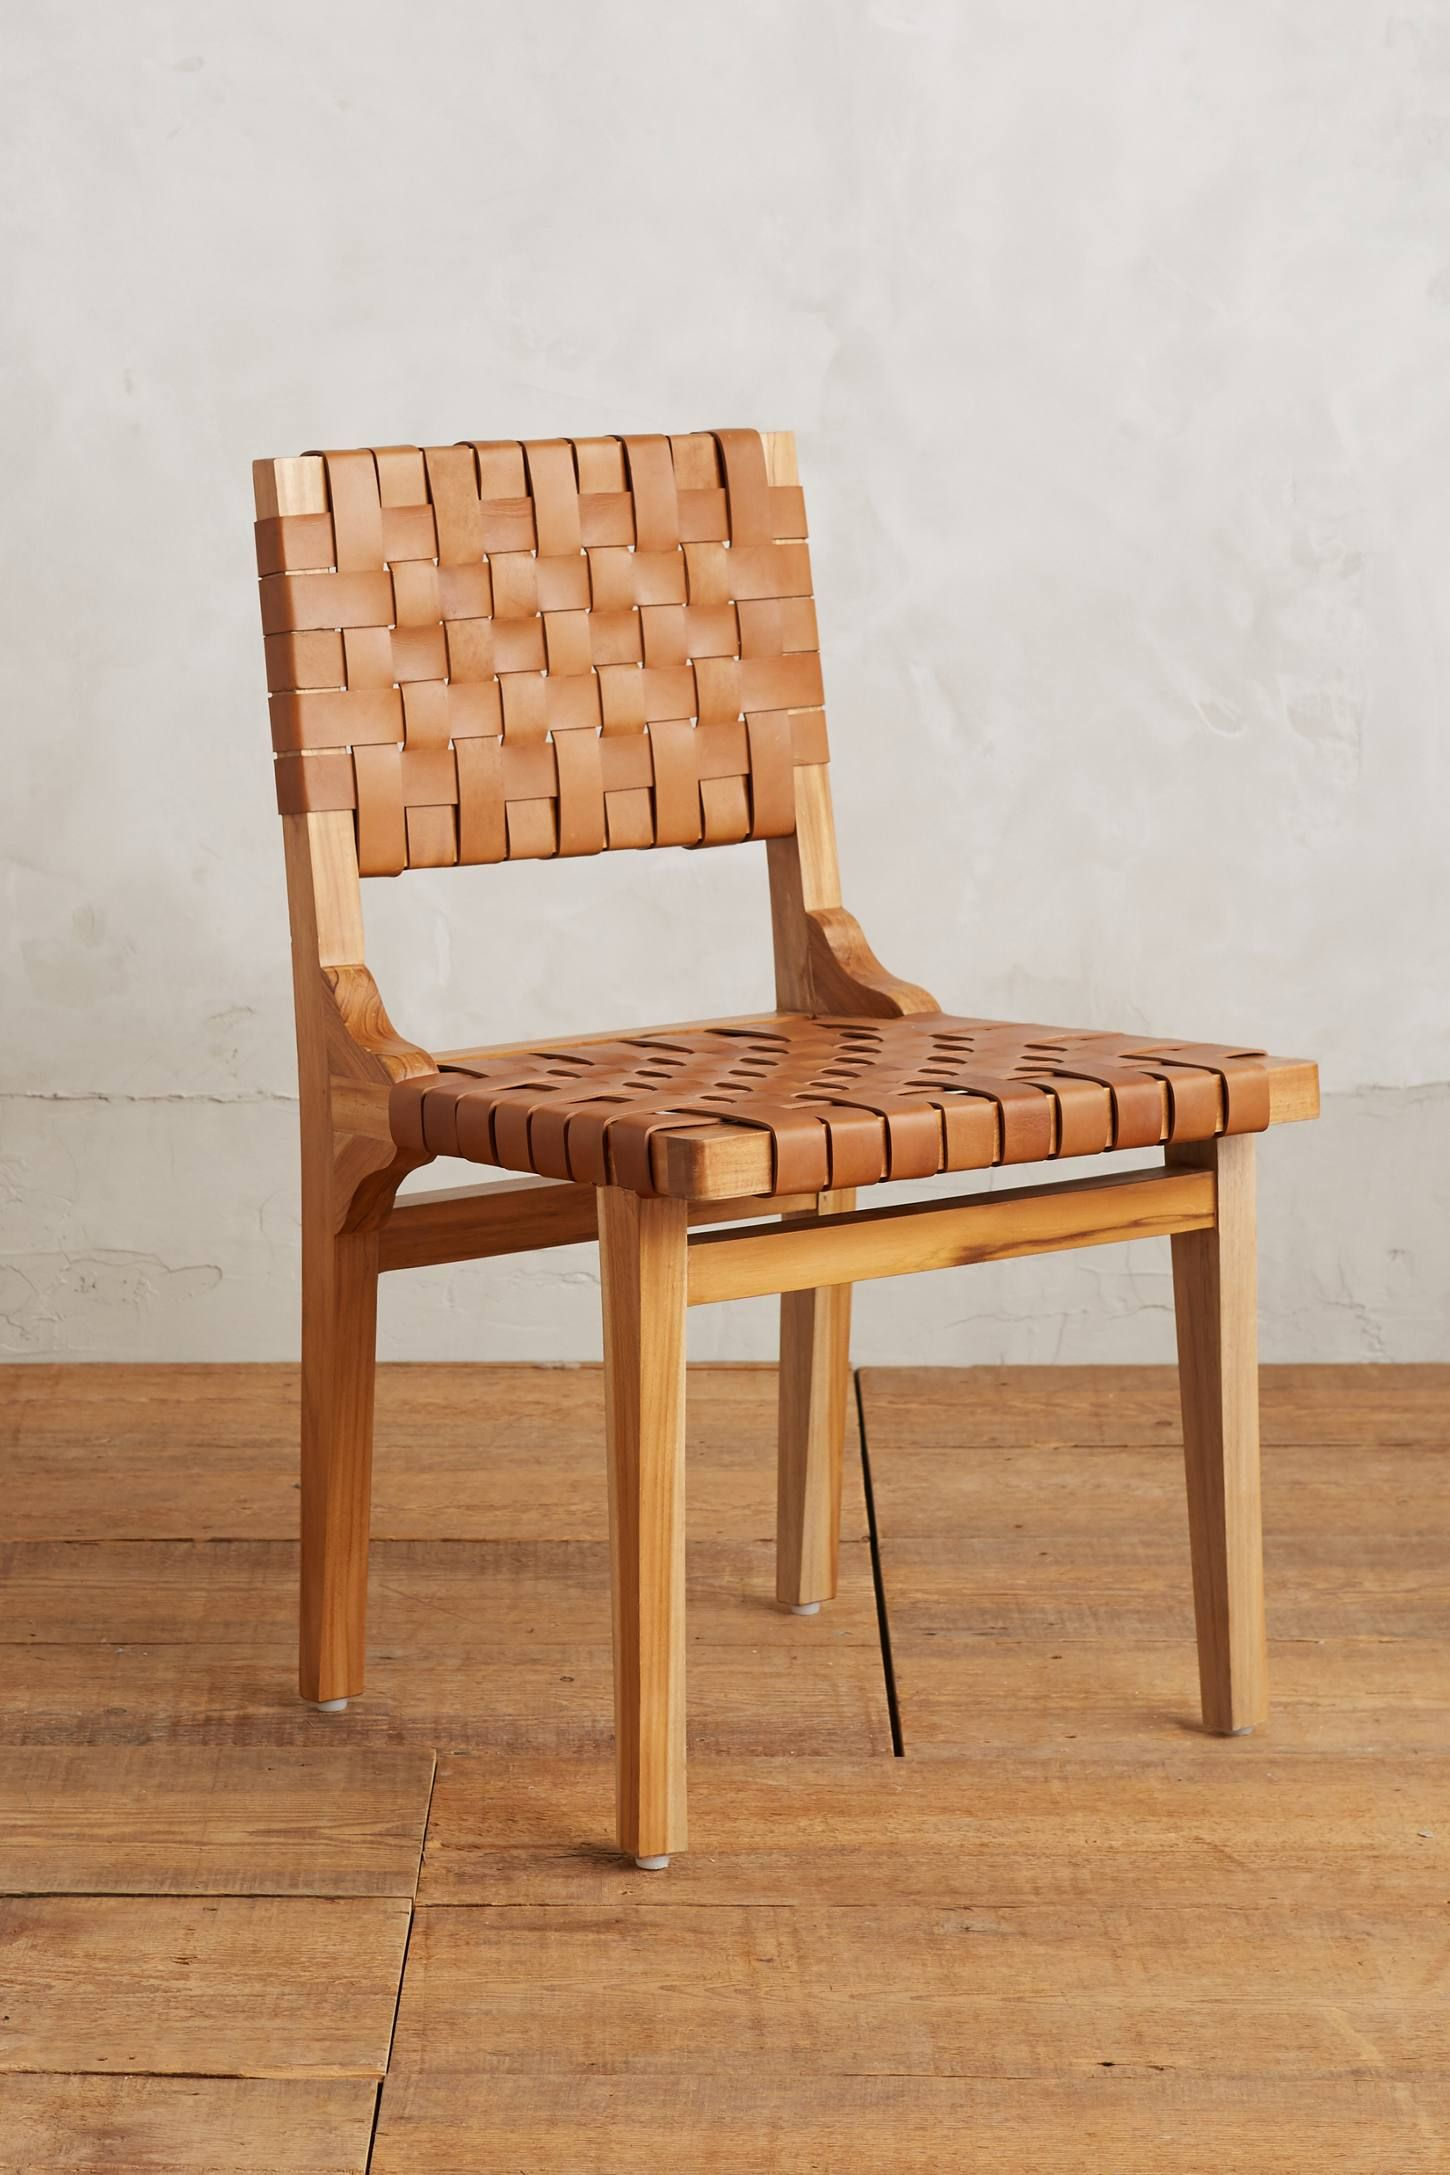 Shop The Leather Loom Dining Chair And More Anthropologie At Anthropologie Today Read Customer Reviews Dis Dining Chairs Eclectic Dining Room Eclectic Dining